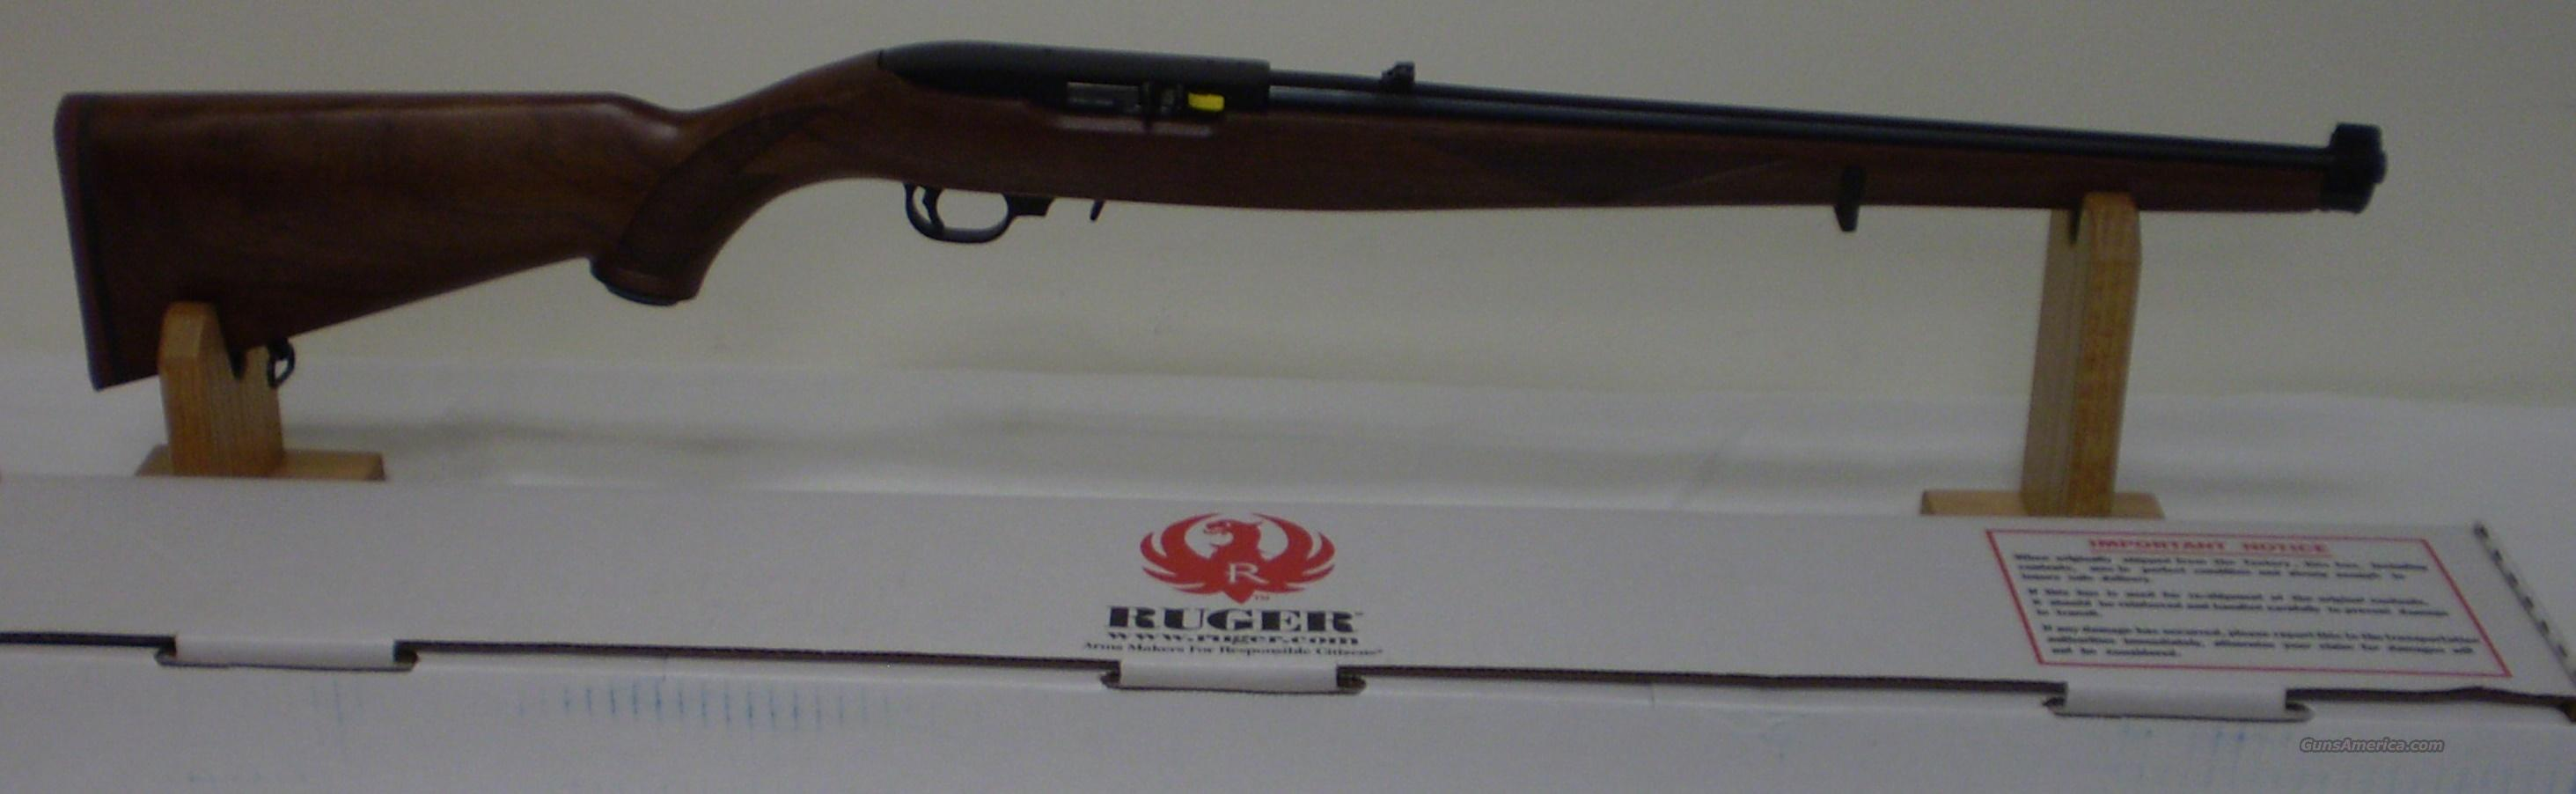 Ruger 10/22 Mannlicher Talo Special #1265 22LR International RSI , Blued ,Recoil Pad  Guns > Rifles > Ruger Rifles > 10-22